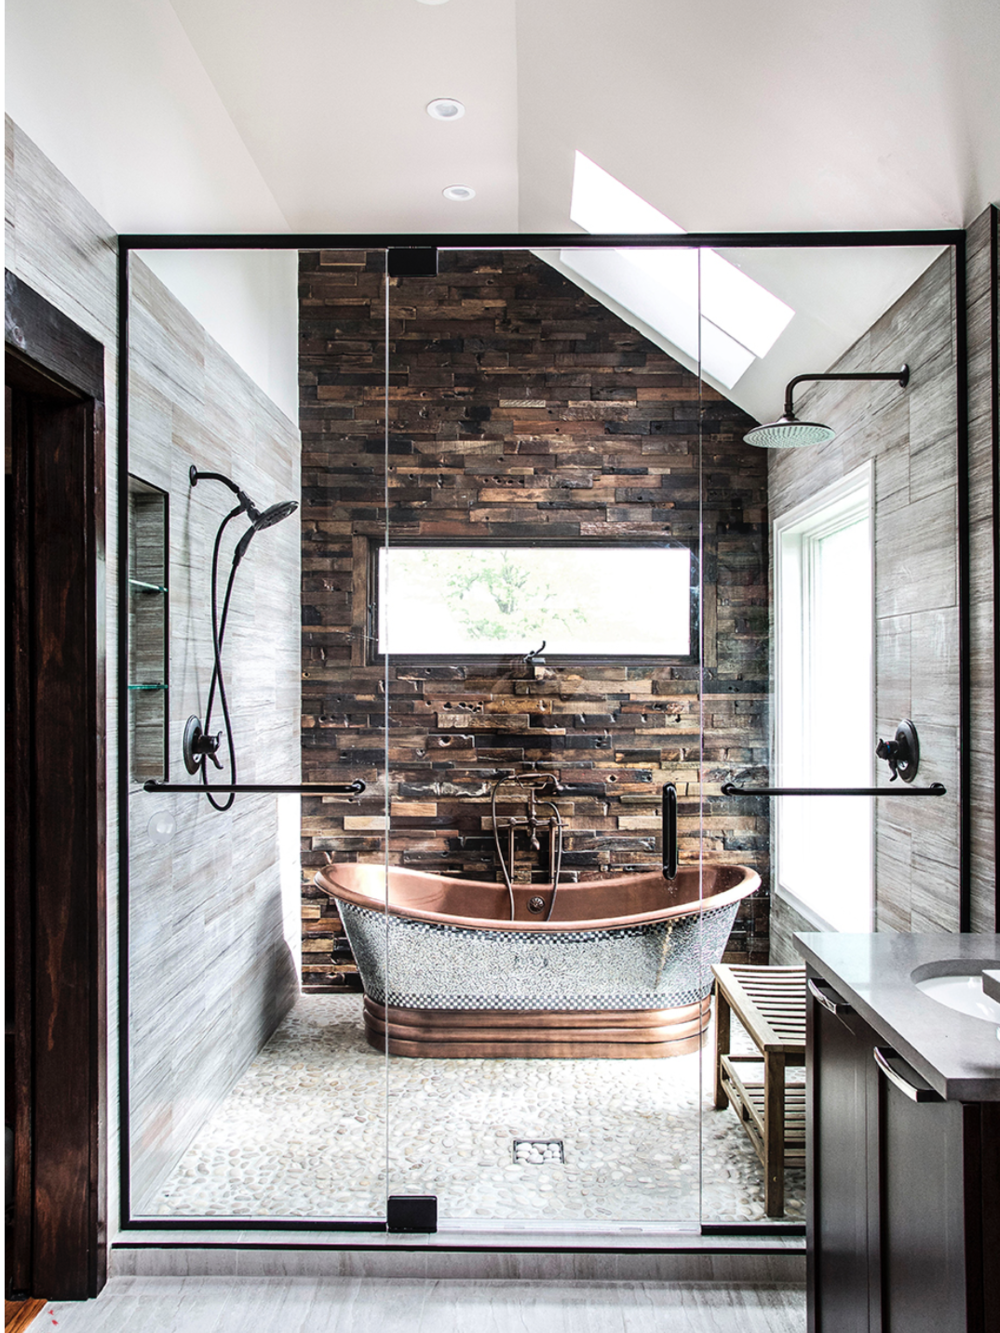 The 15 Most Beautiful Bathrooms on Pinterest - Sanctuary Home Decor